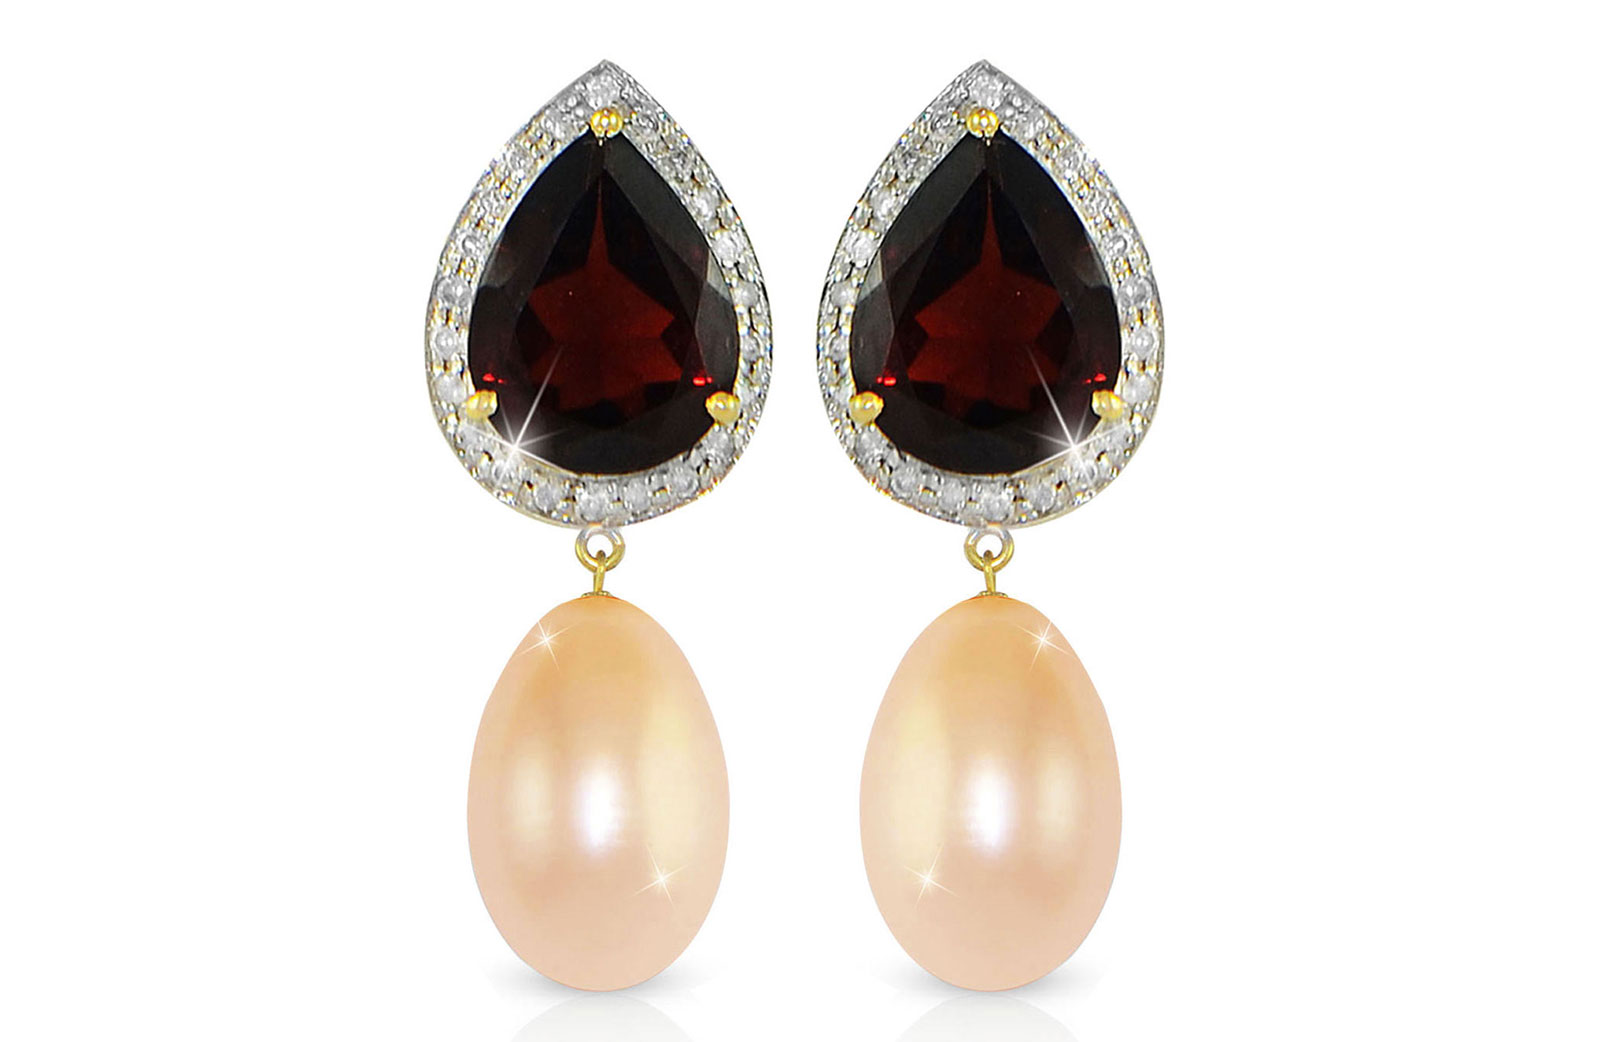 Vera Perla 18K Gold 0.24ct Diamonds, Garnet and 13mm Pink Pearl Earrings